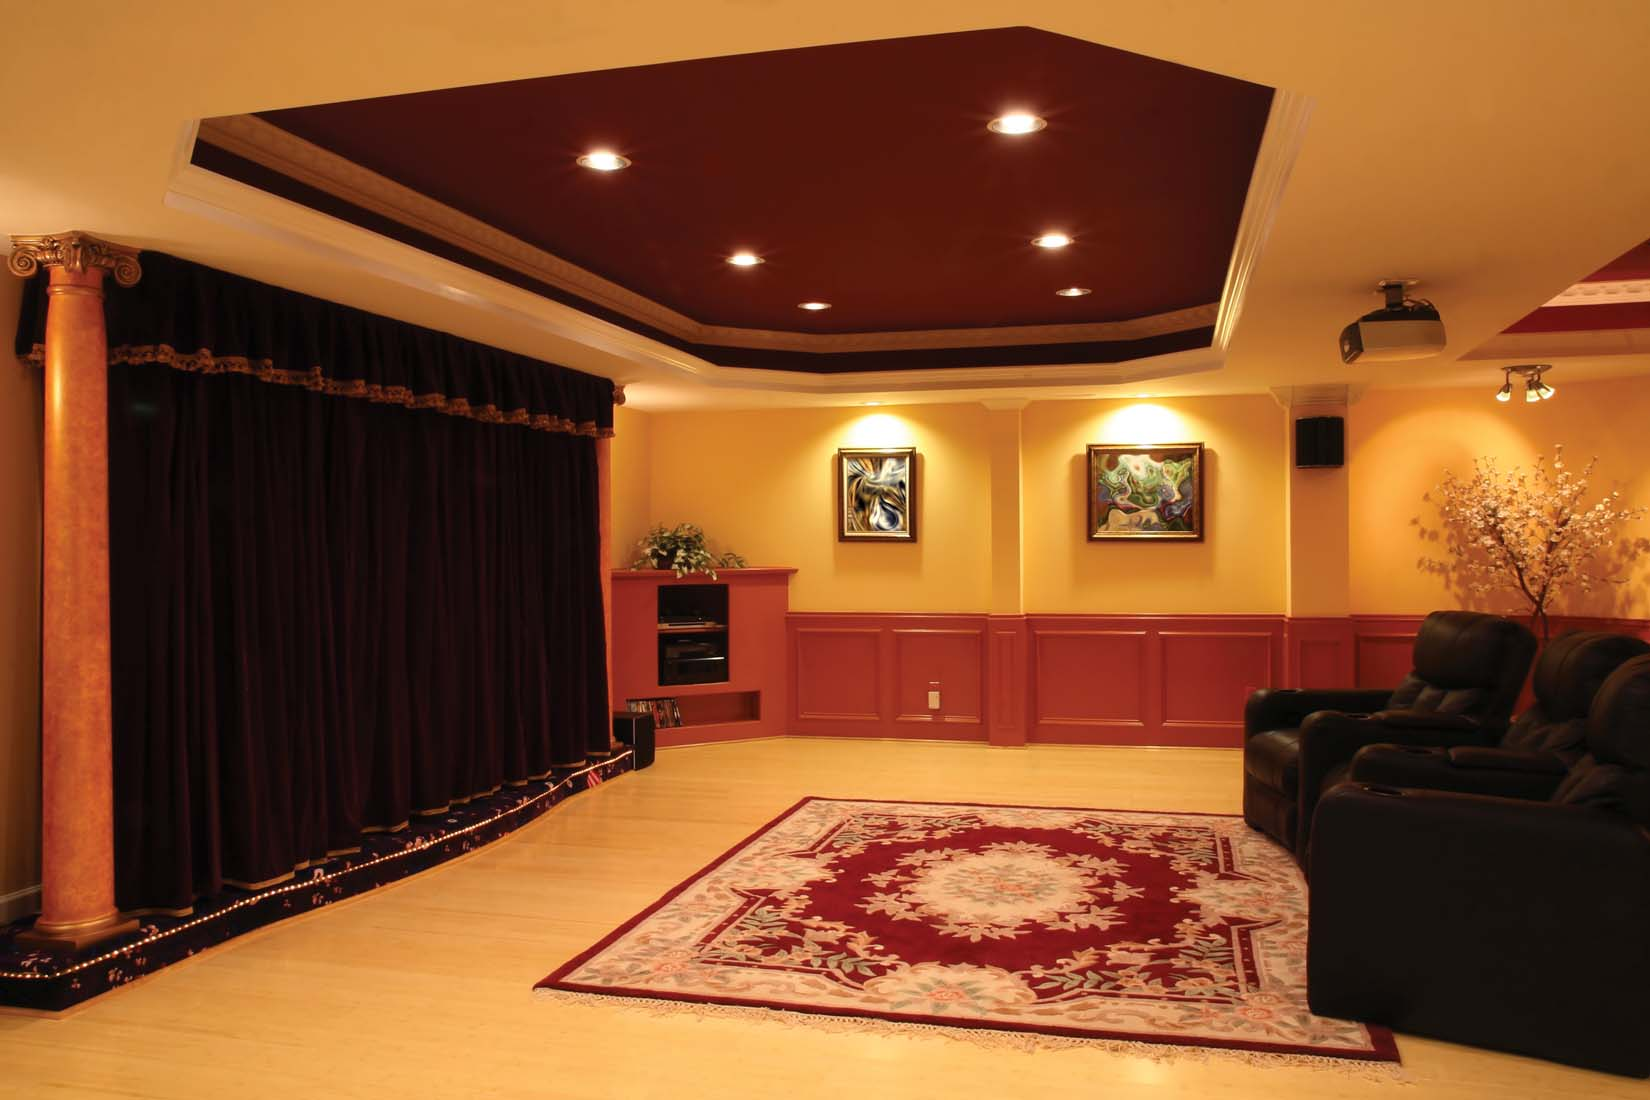 How to light a room for the ultimate home theater experience ge lighting north america news - Home lighting design ...